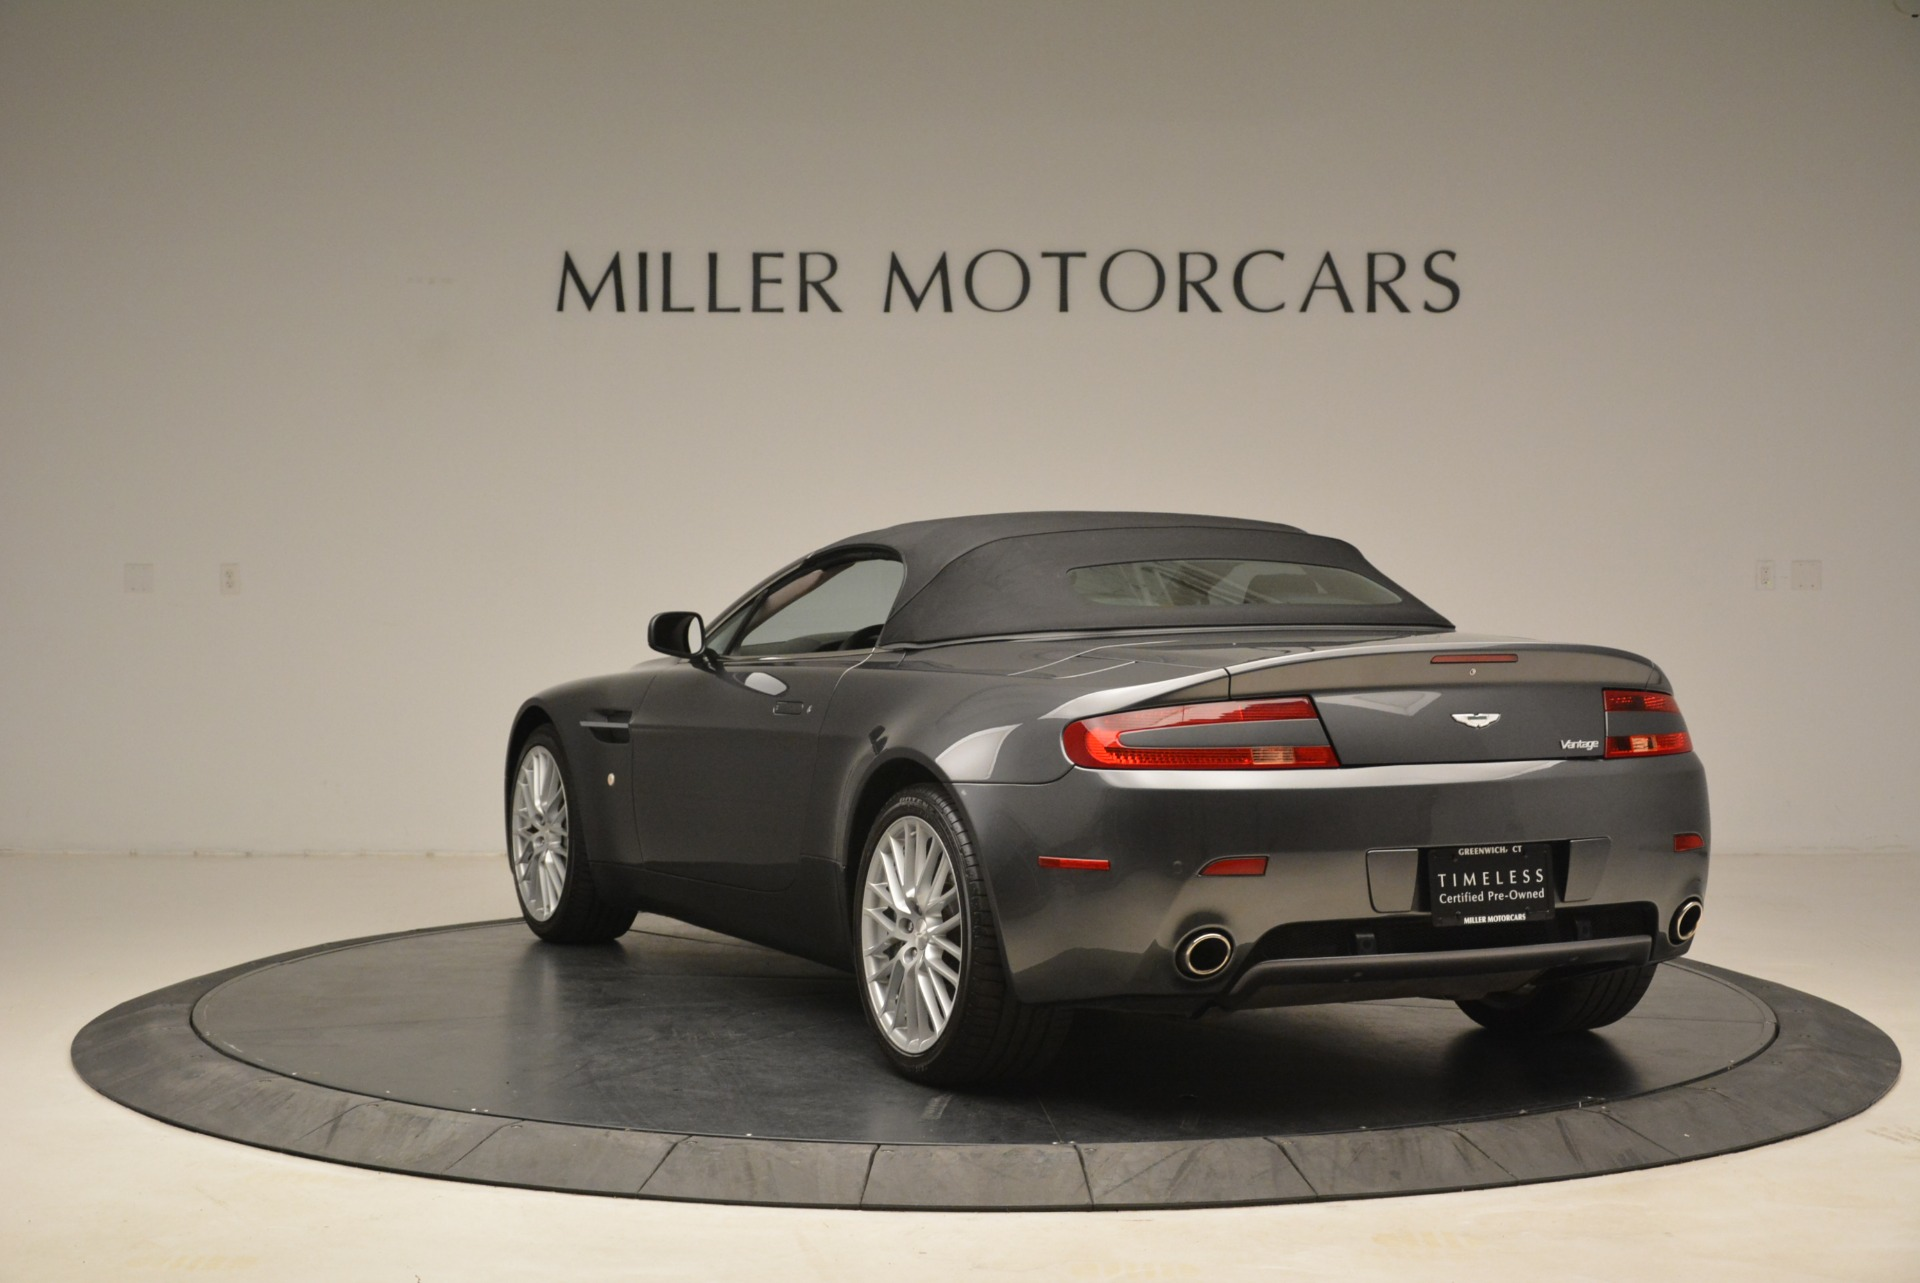 Used 2009 Aston Martin V8 Vantage Roadster For Sale In Westport, CT 2123_p17